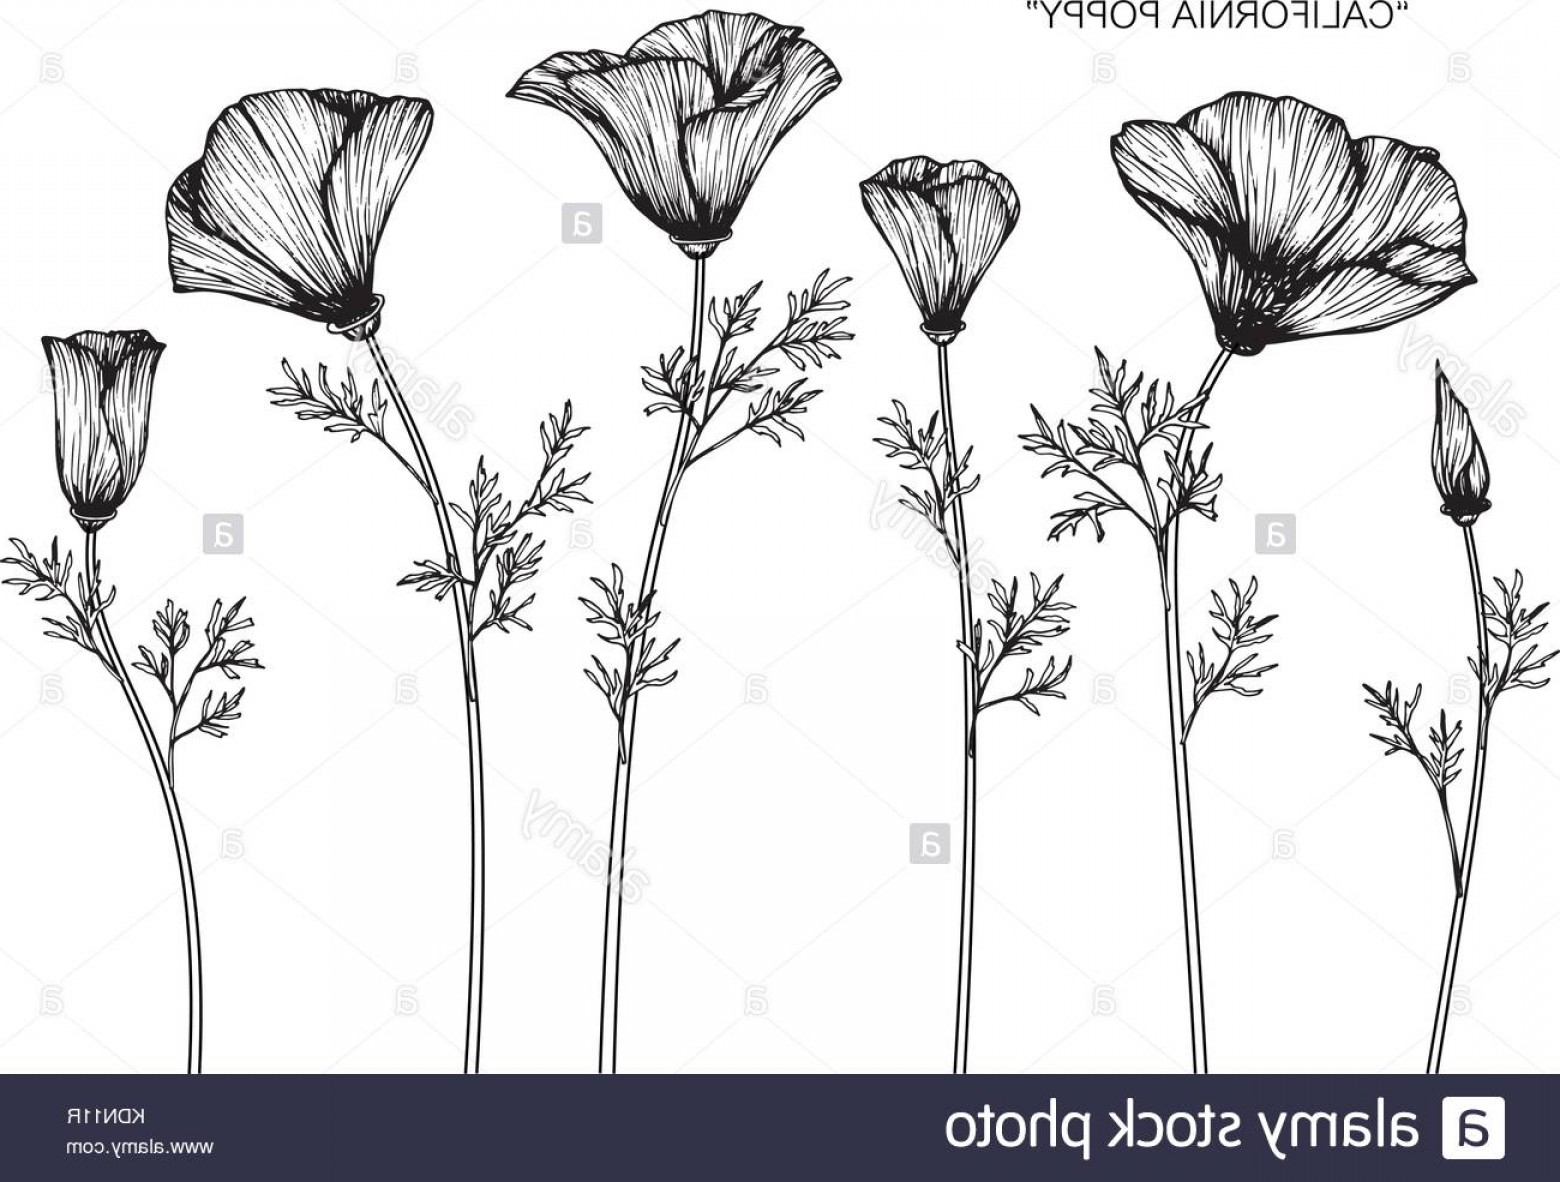 California Black And White Vector: Stock Image California Poppy Flower Drawing Illustration Black And White With